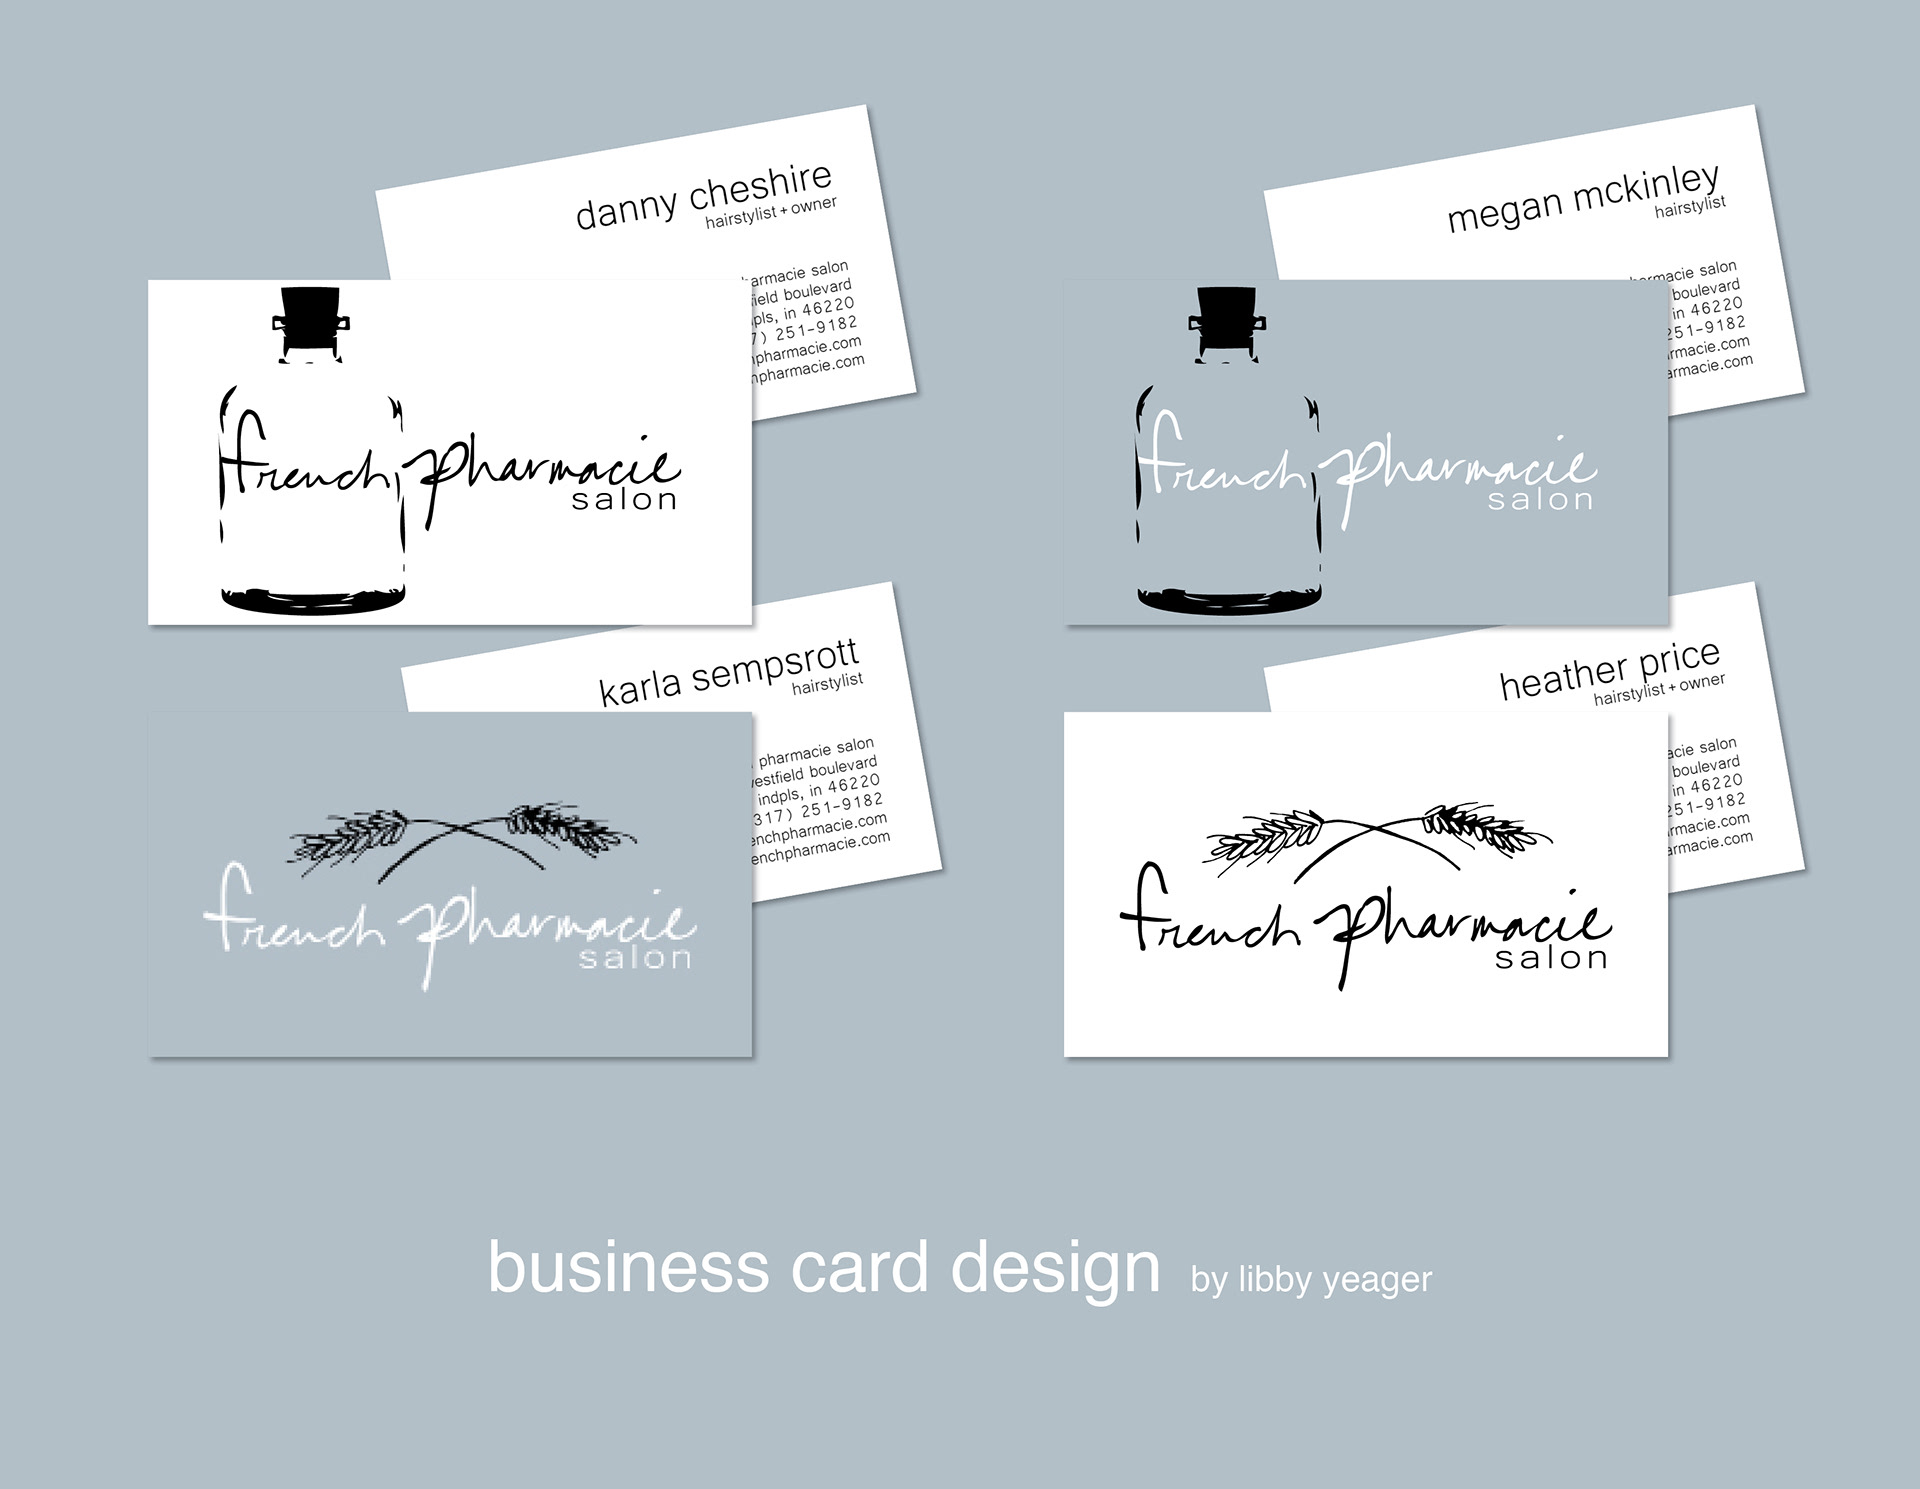 Look Good Design | Indianapolis Branding, Marketing and Business ...